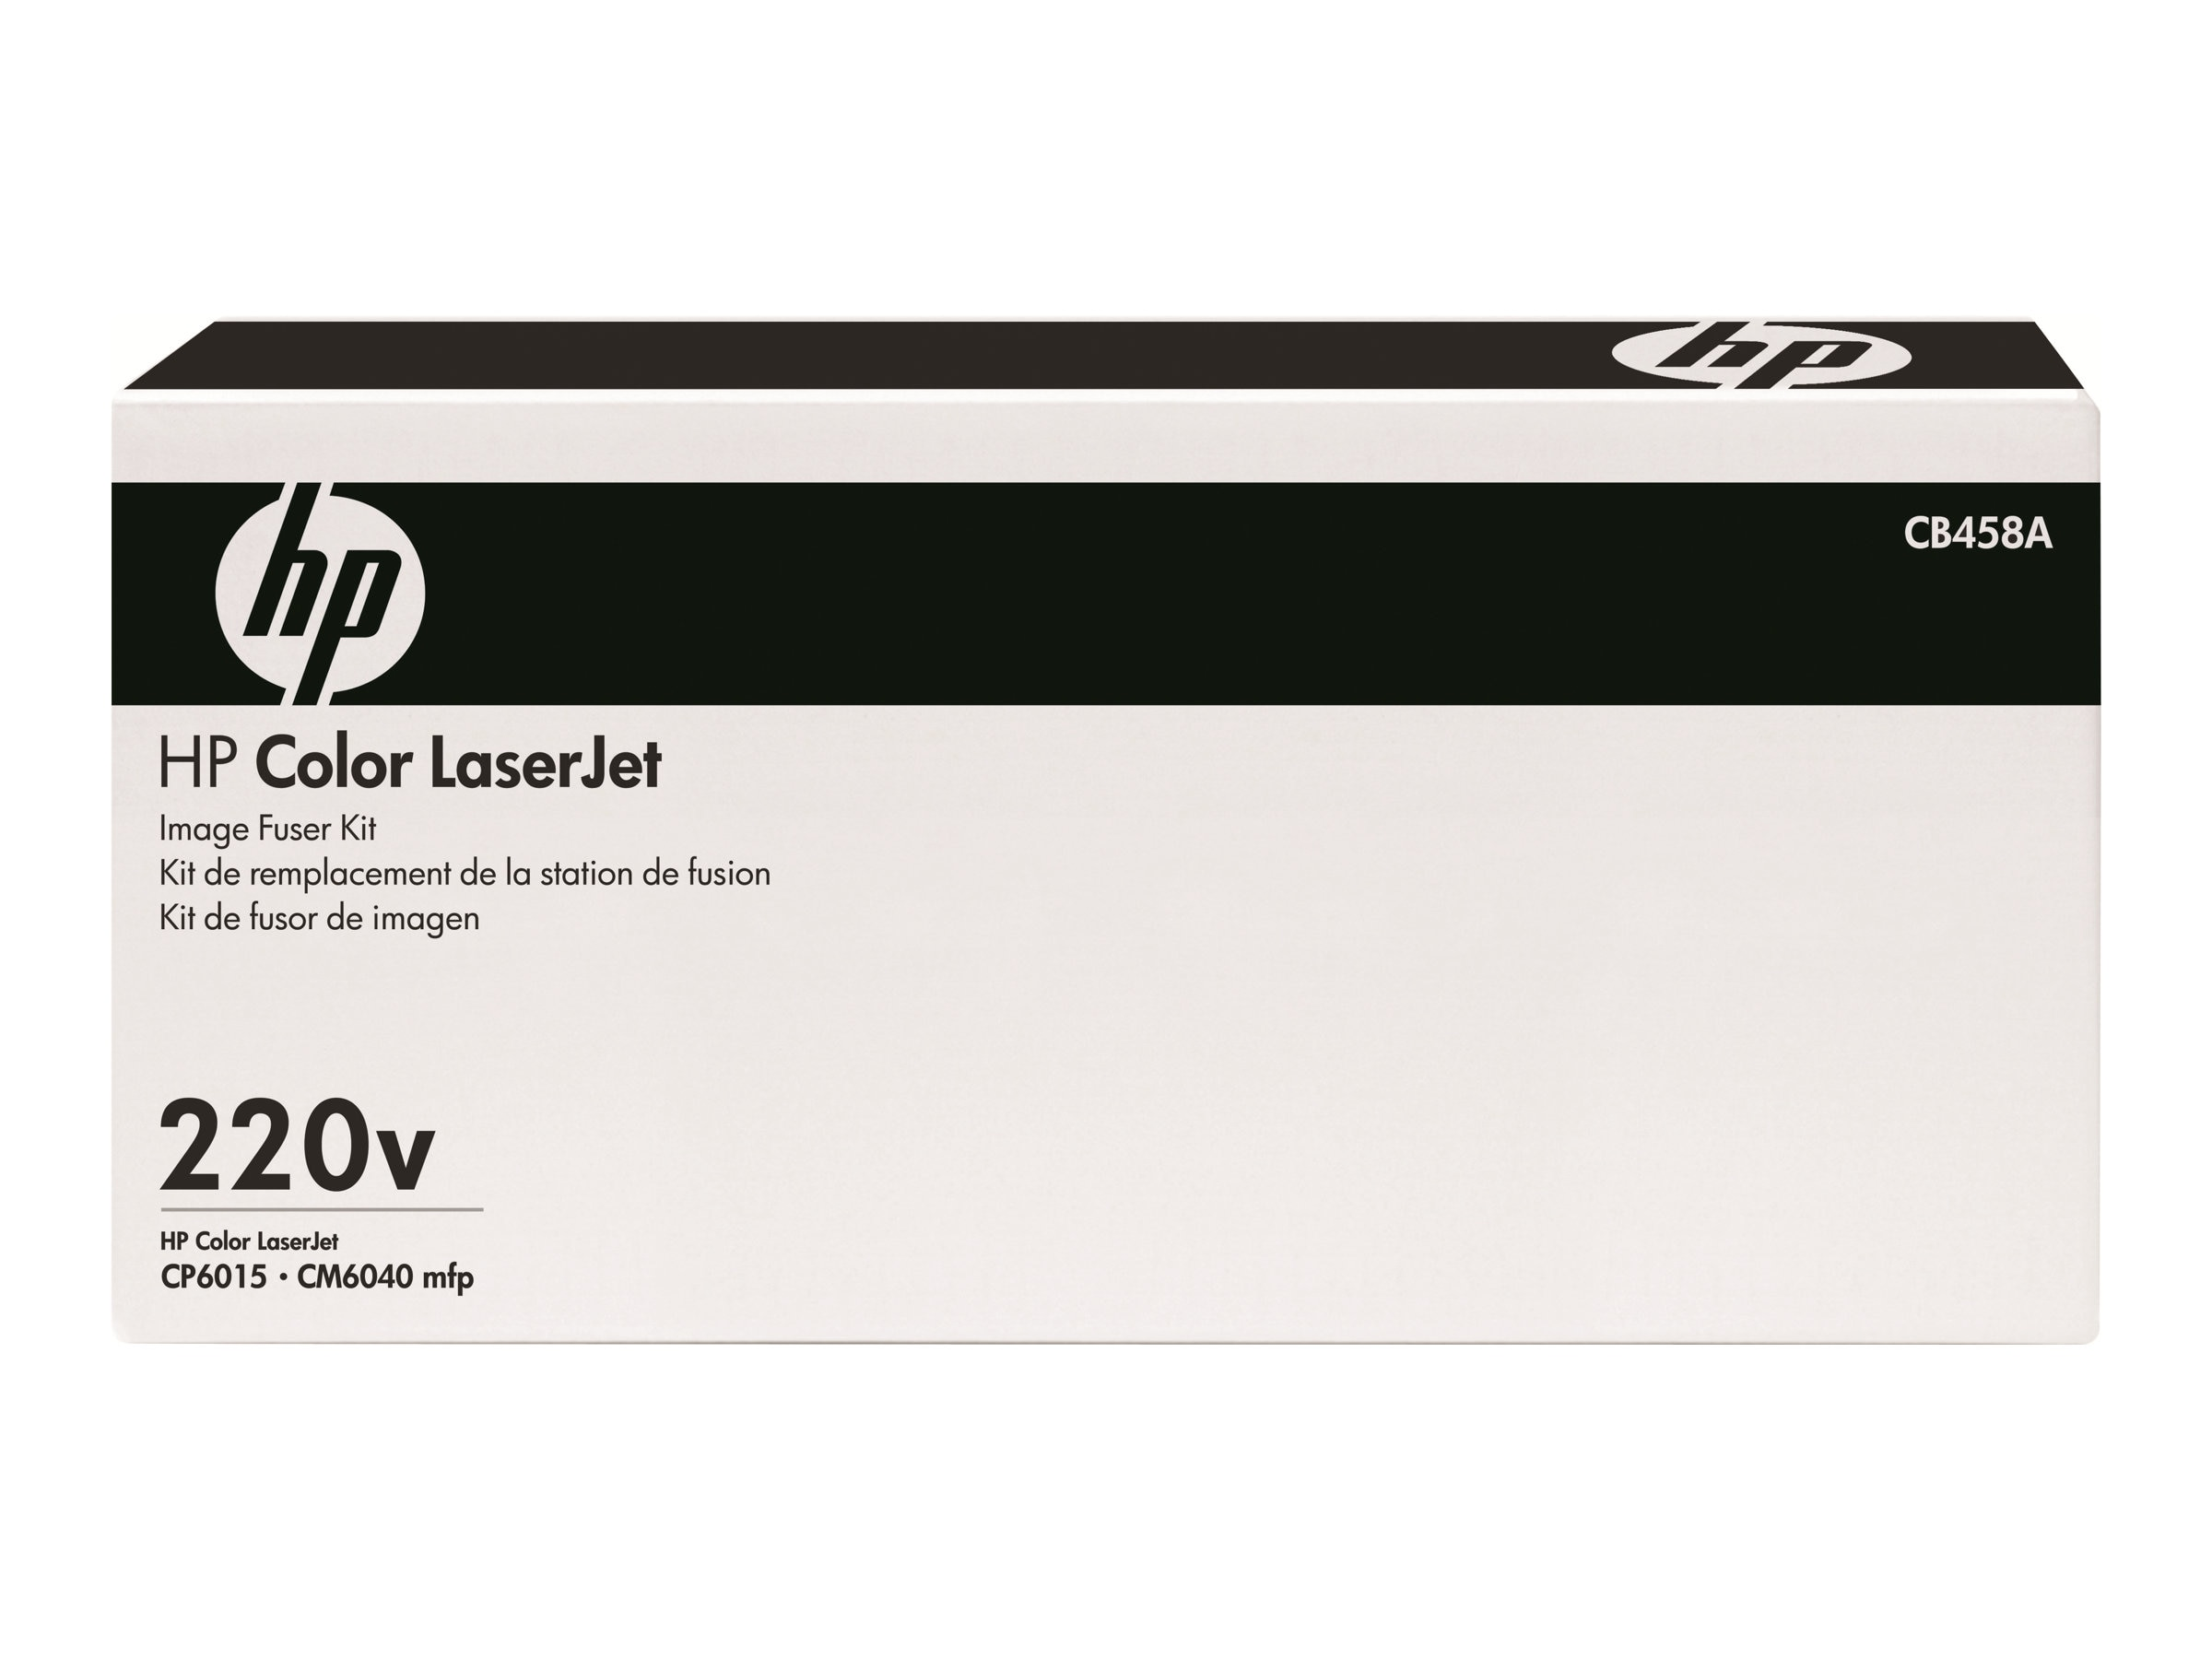 HP 220V Fuser Kit for for Color LaserJet CP6015 & CM6040MFP, CB458A, 8545081, Toner and Imaging Components